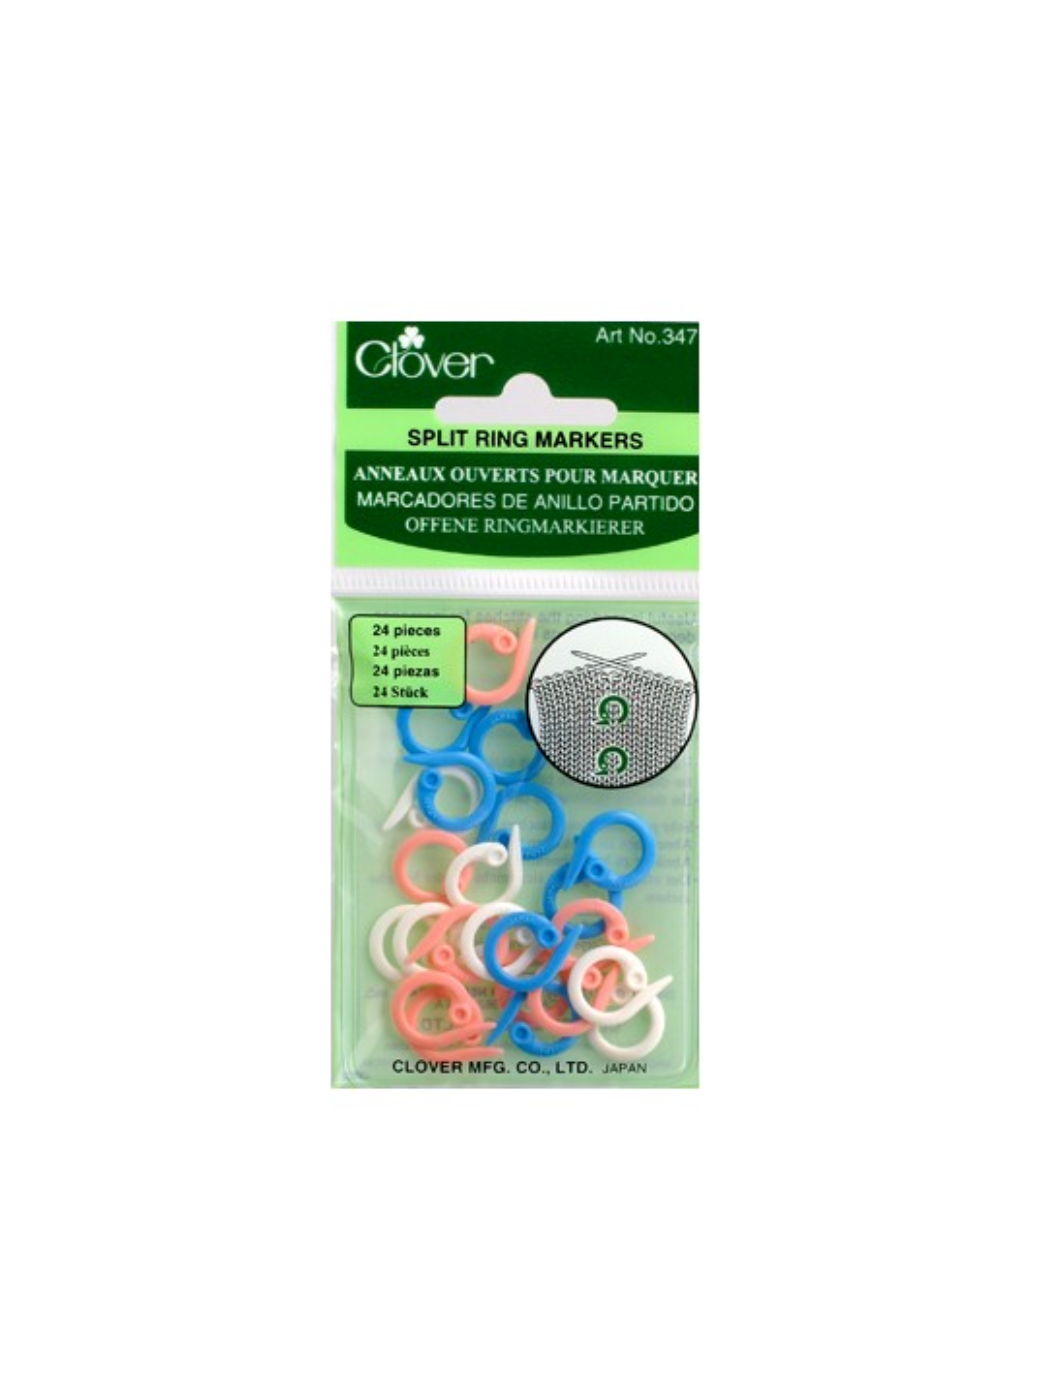 Clover Stitch Markers - Split Ring